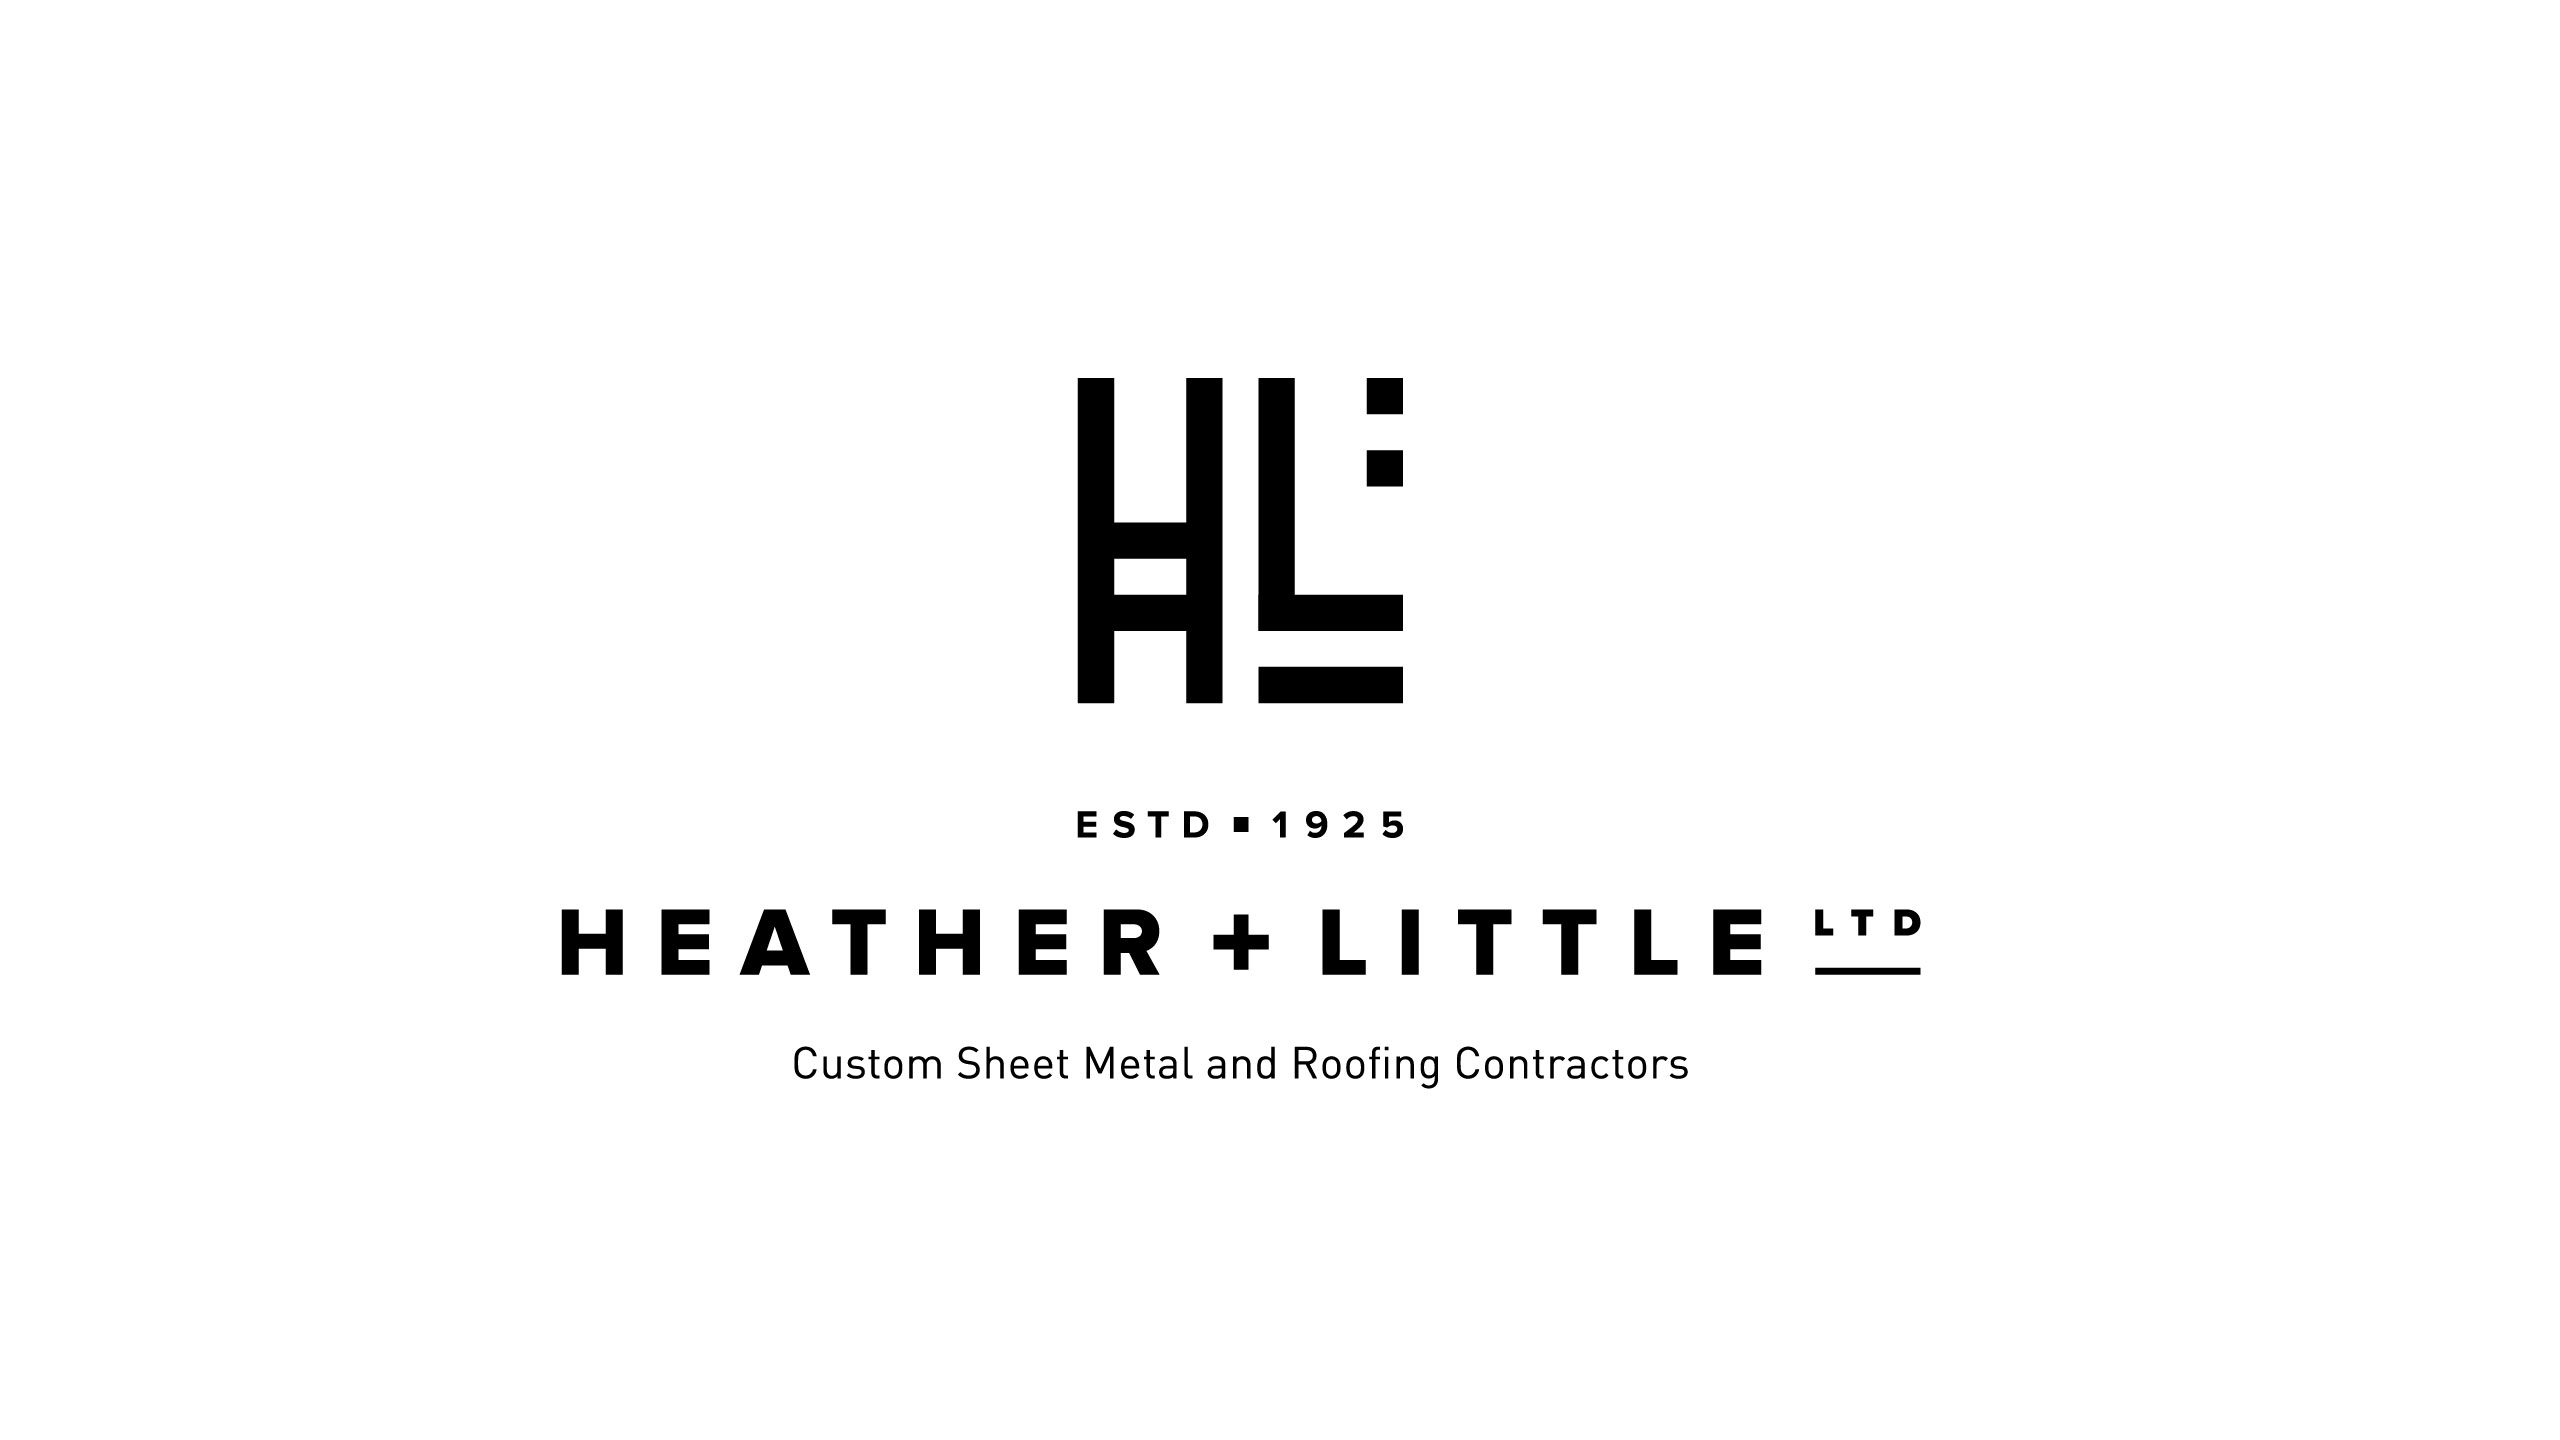 heather and little logo black and white